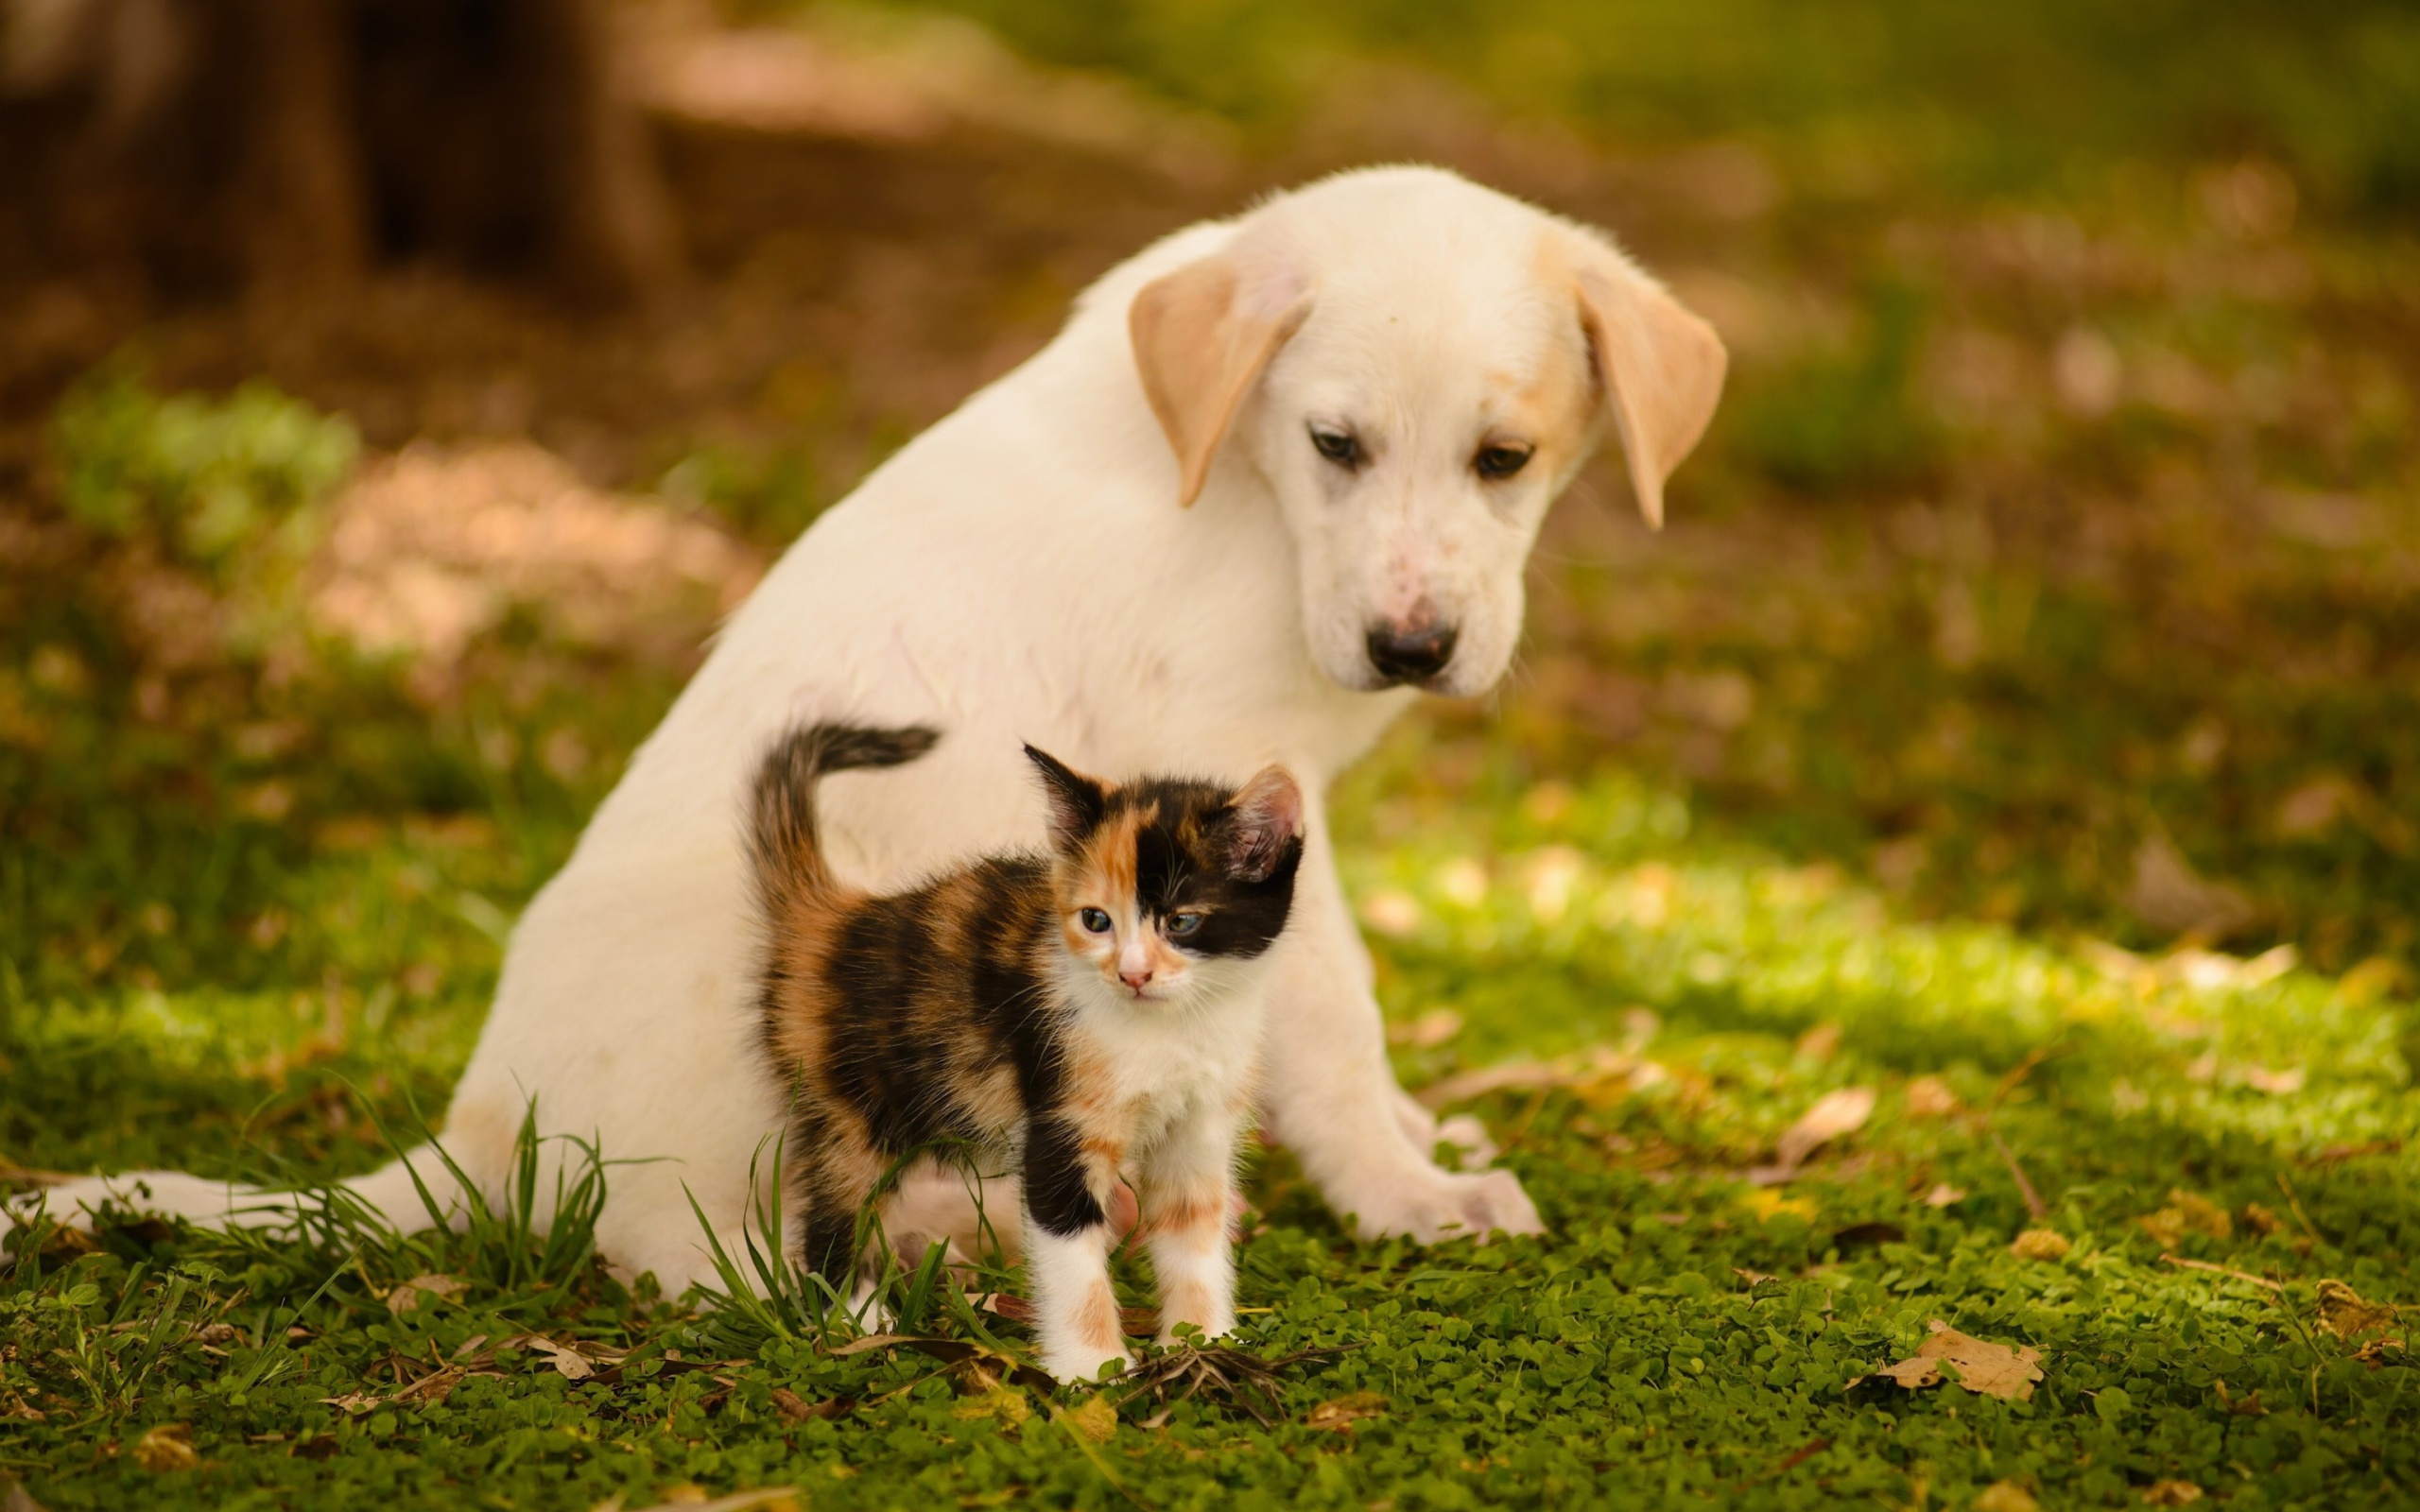 Kitten And Puppy Hd Wallpaper Background Image 2560x1600